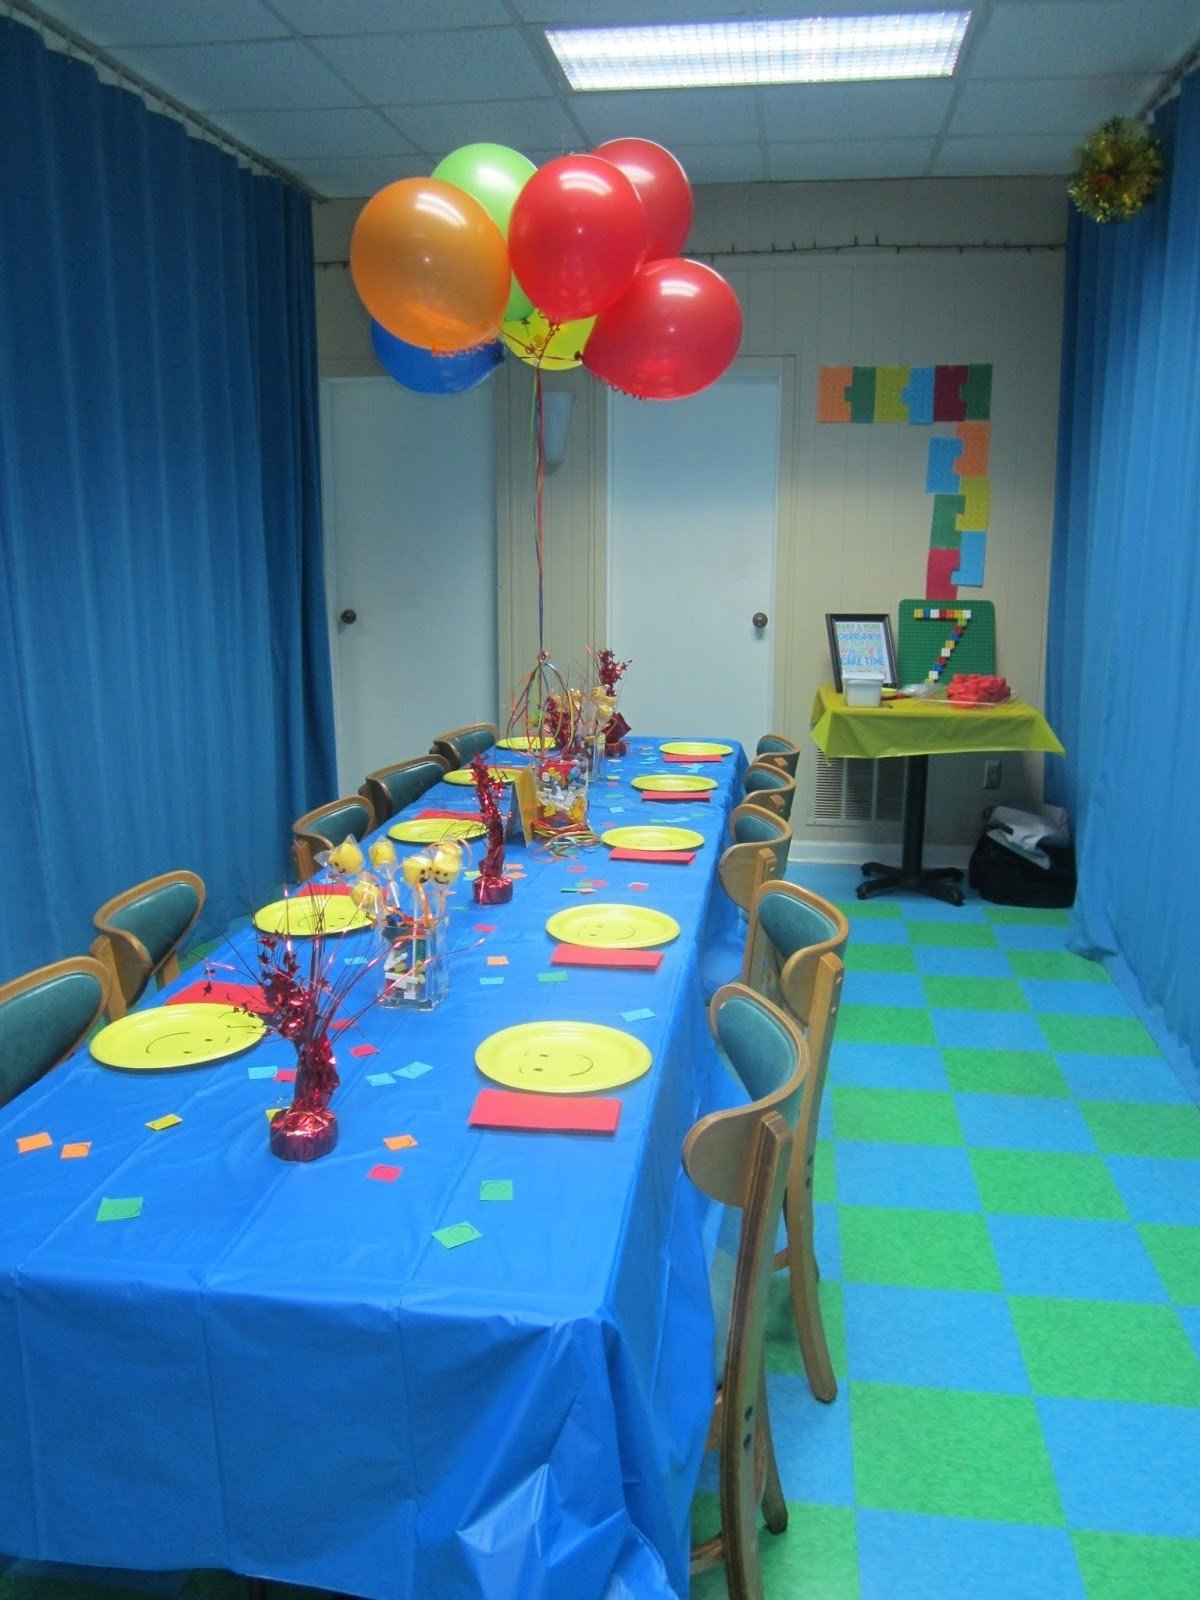 10 Cute Birthday Party Ideas For 5 Year Old 20 New Boy Themes Birthdays